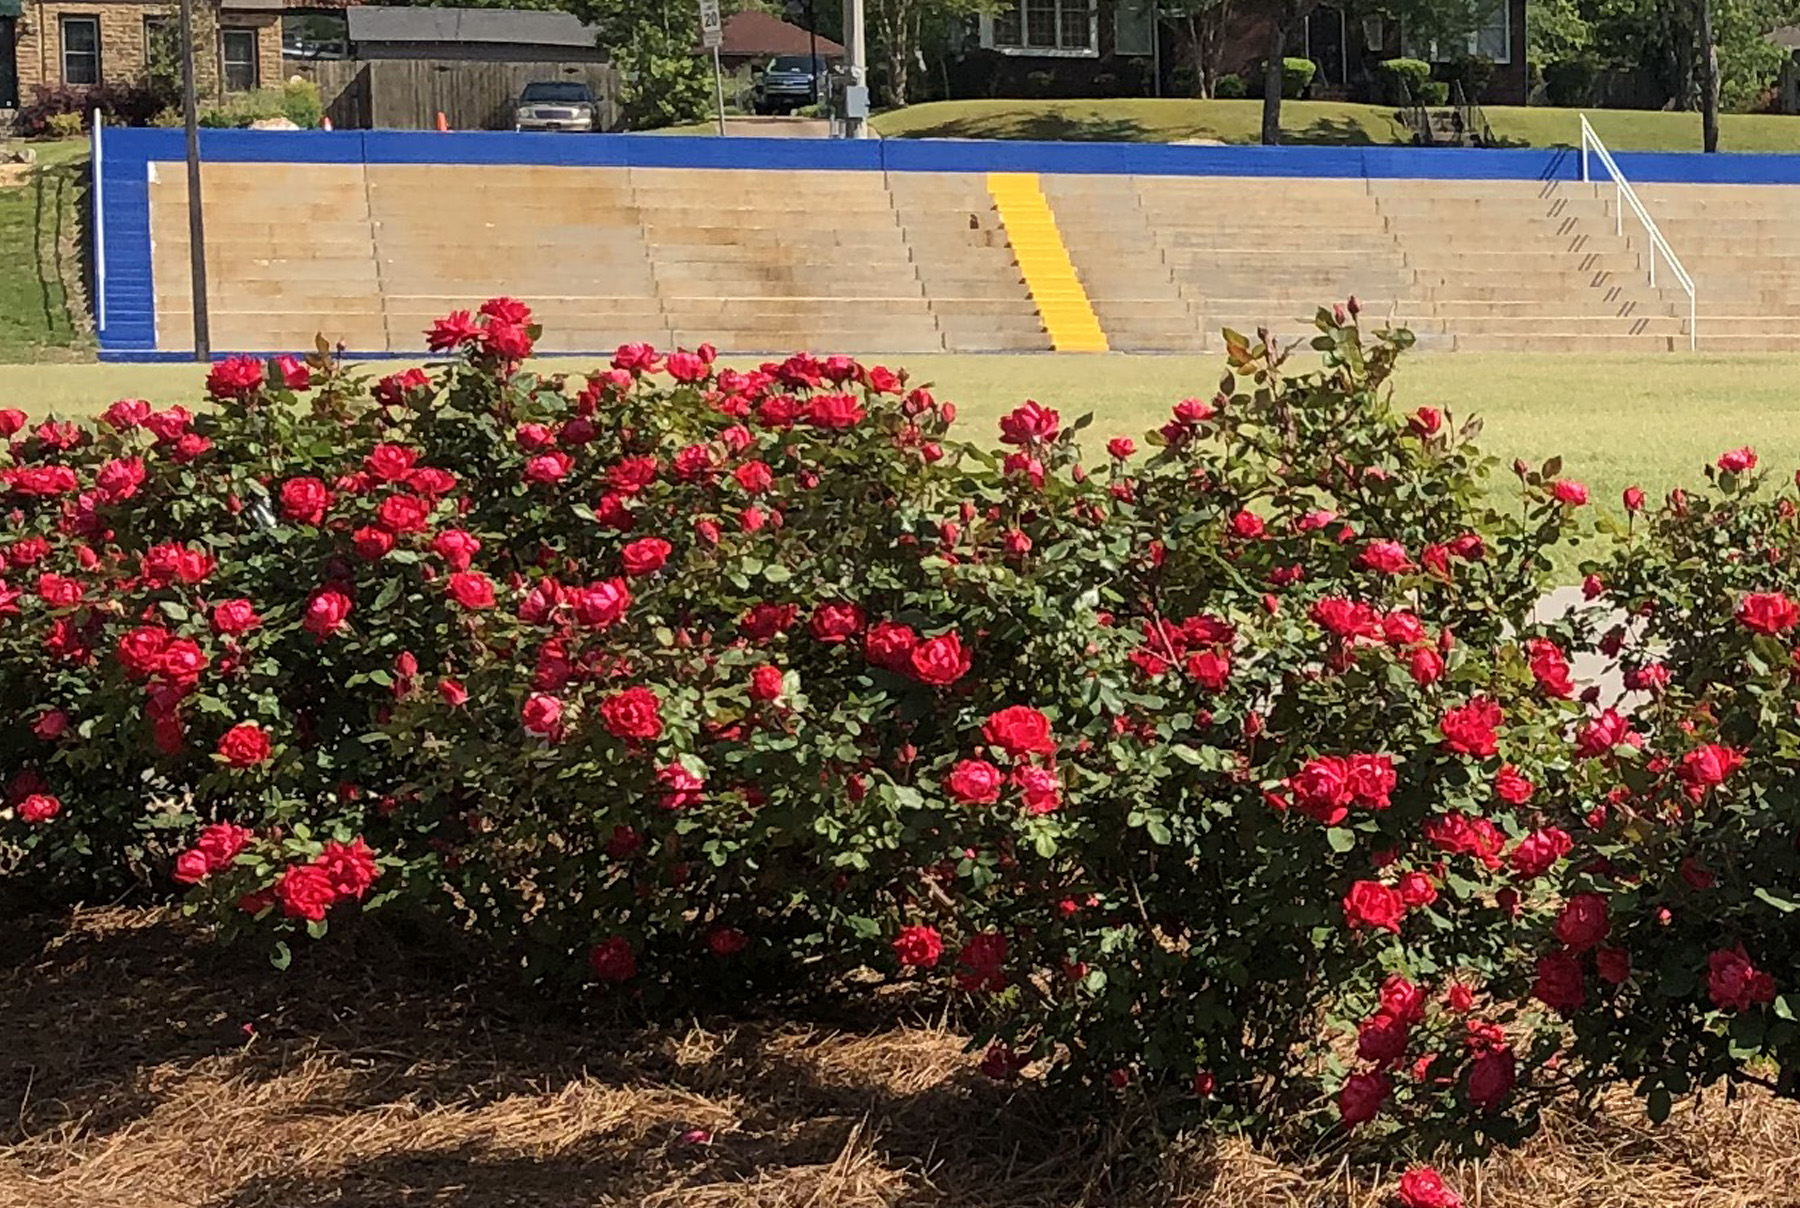 Rose Gardens at Robins Field